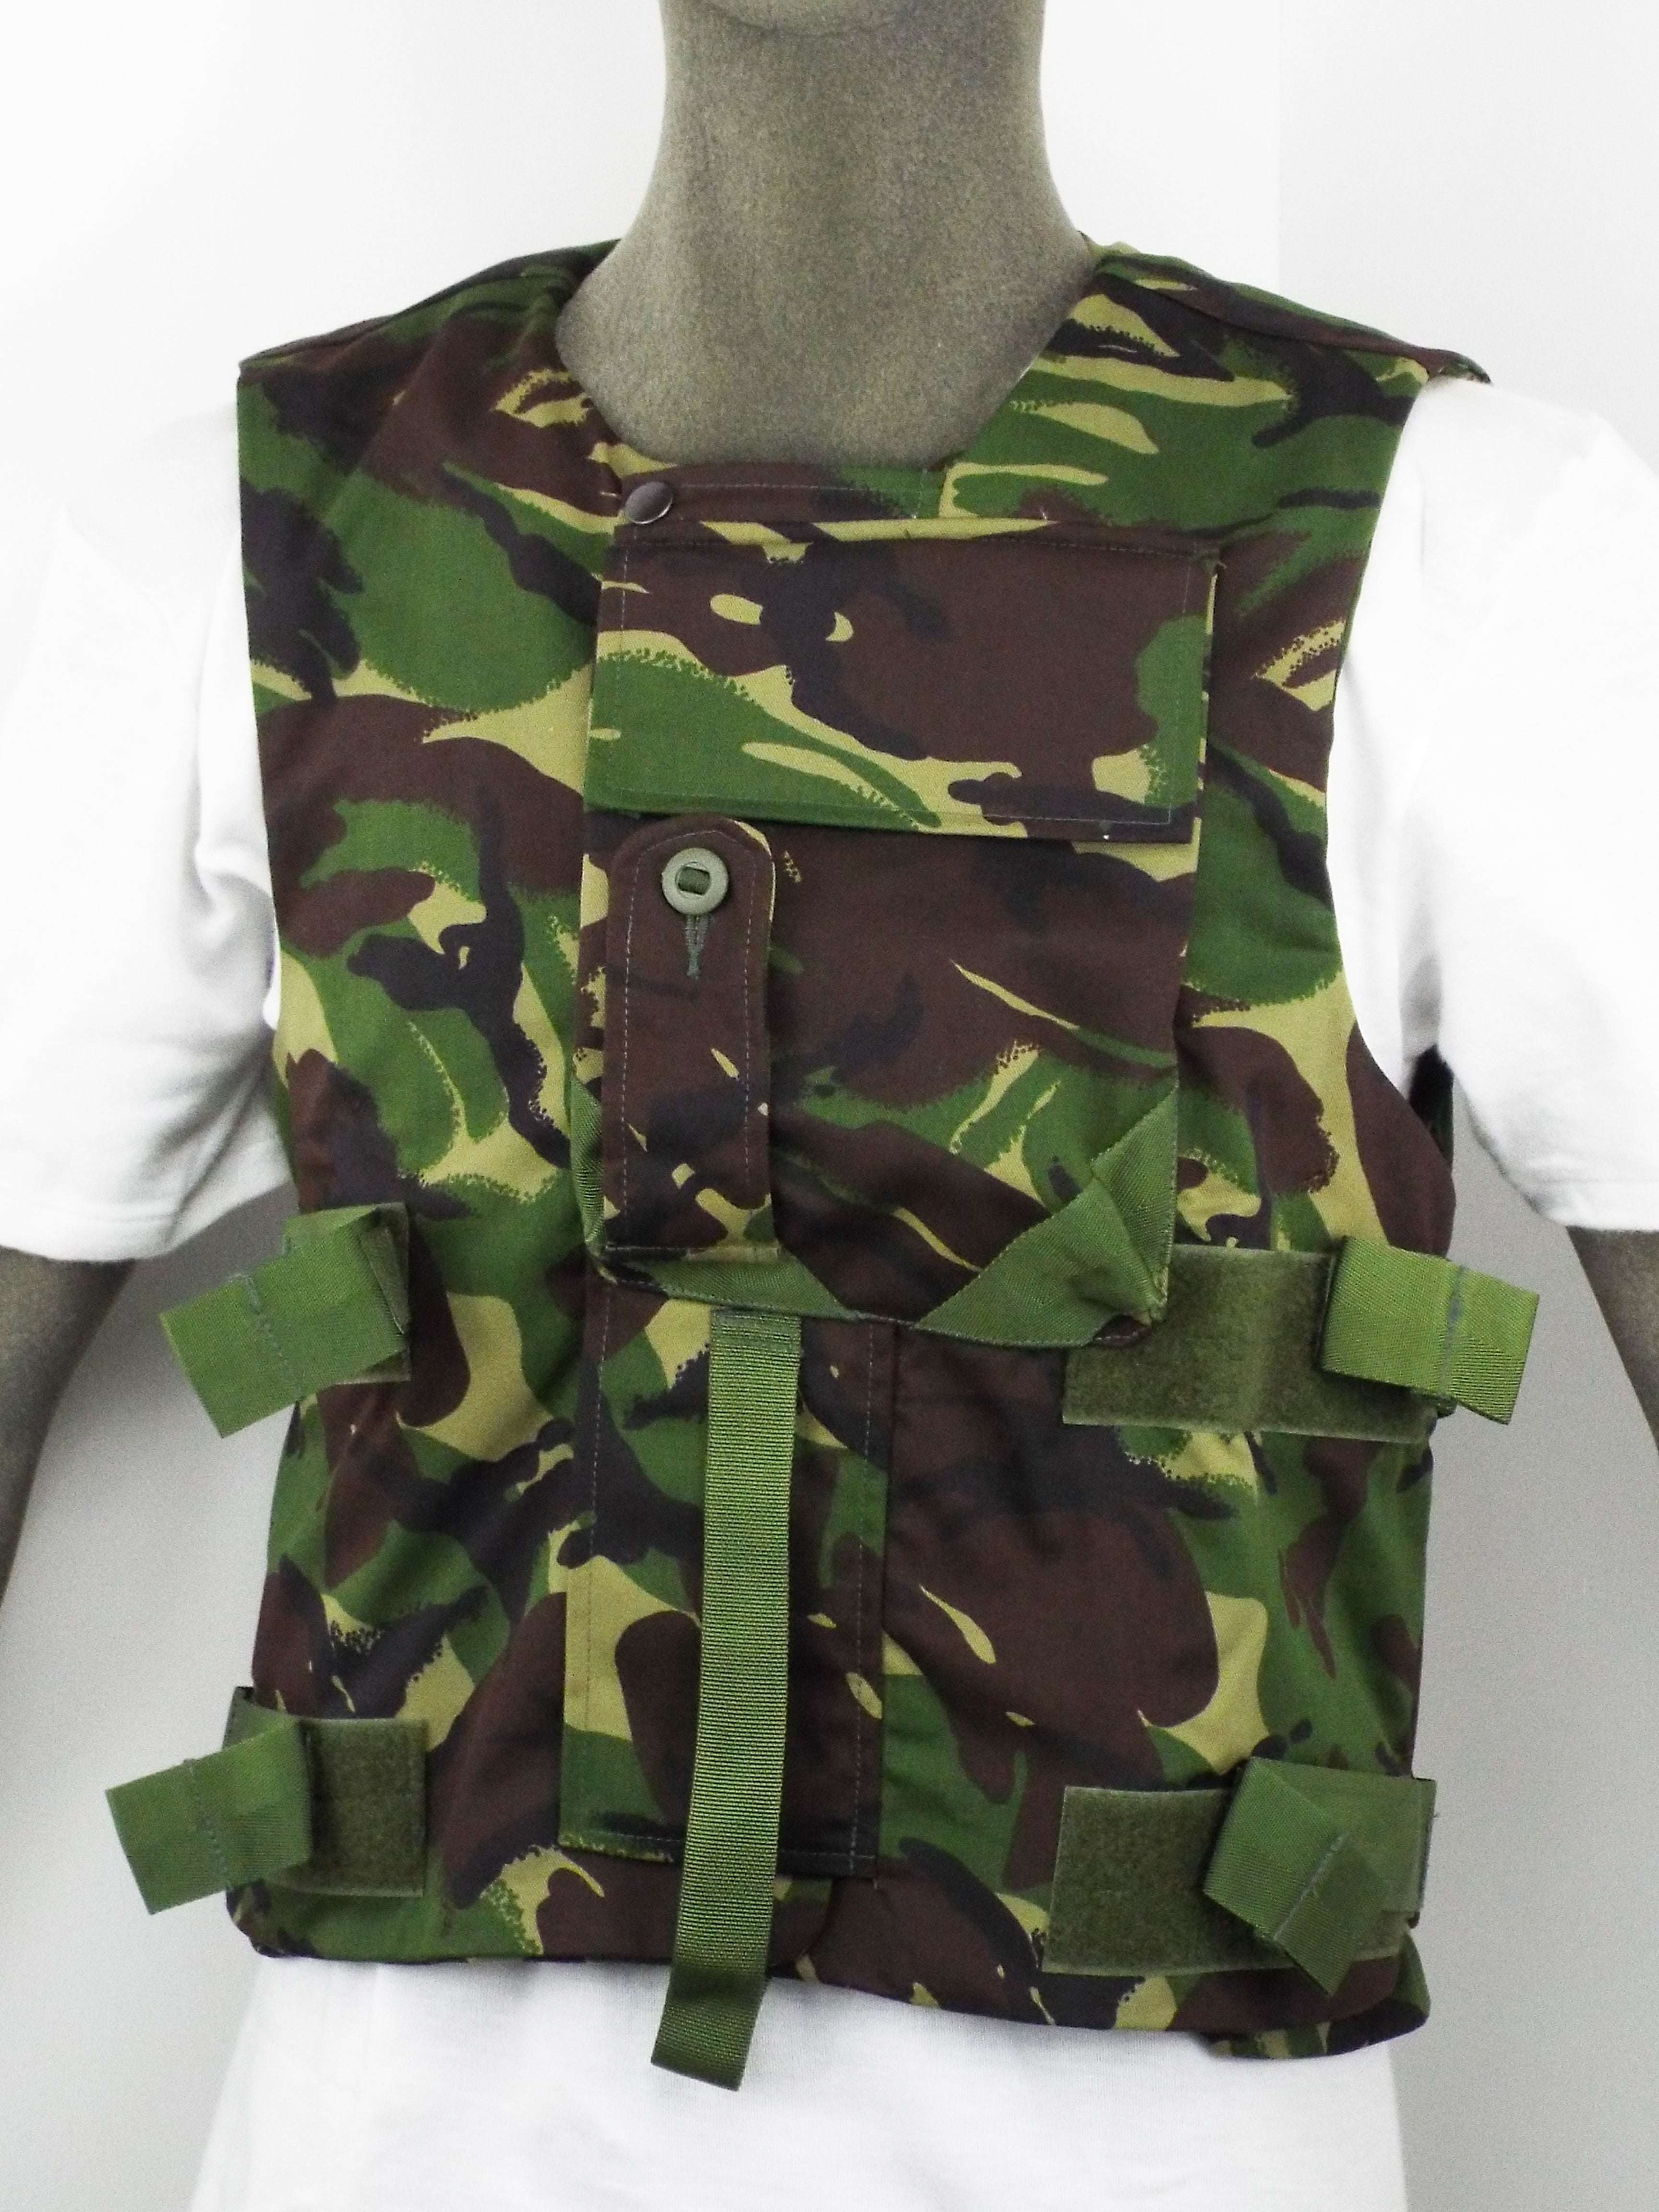 British DPM Camo Flak Vest/Body Armour cover - Genuine British Army